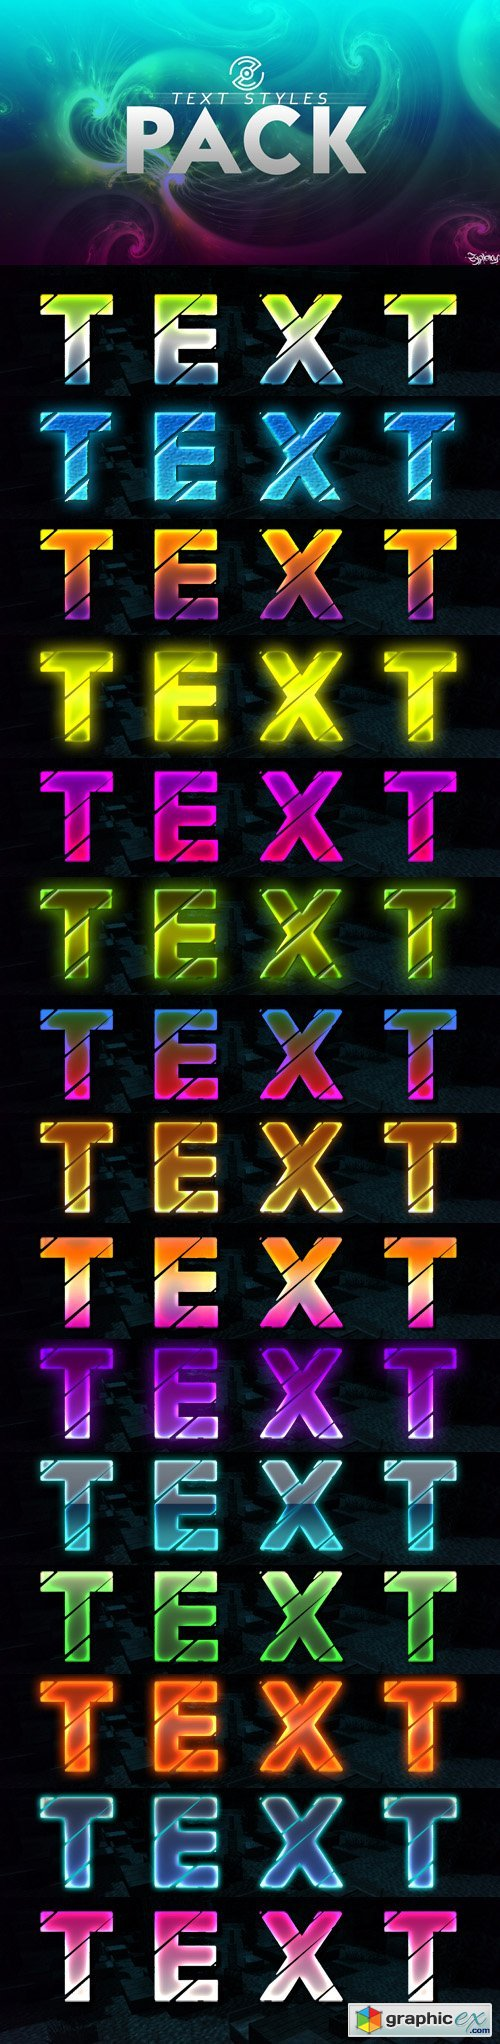 15 Text Styles Pack for Photoshop